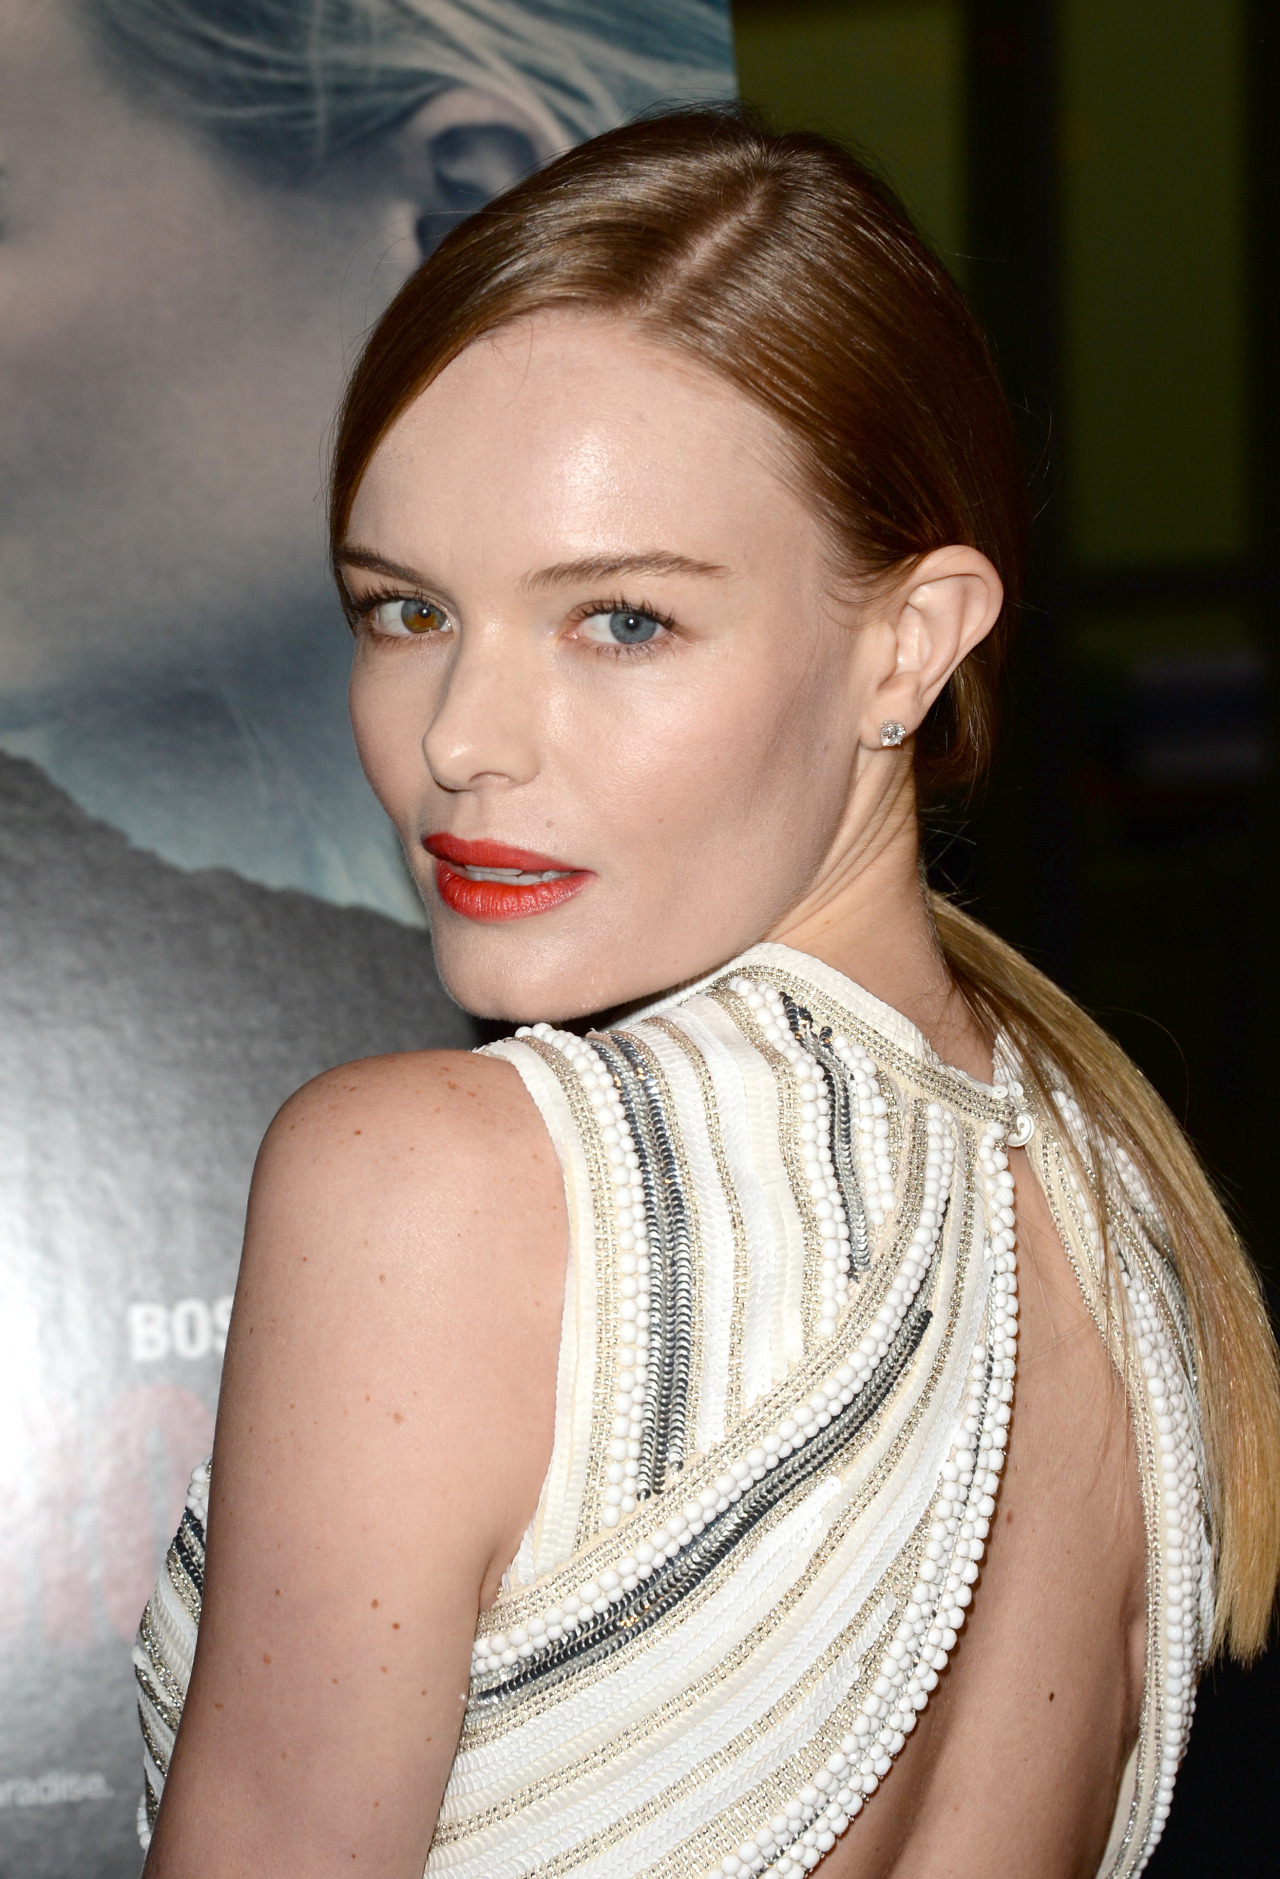 somecelebrities:  Kate Bosworth